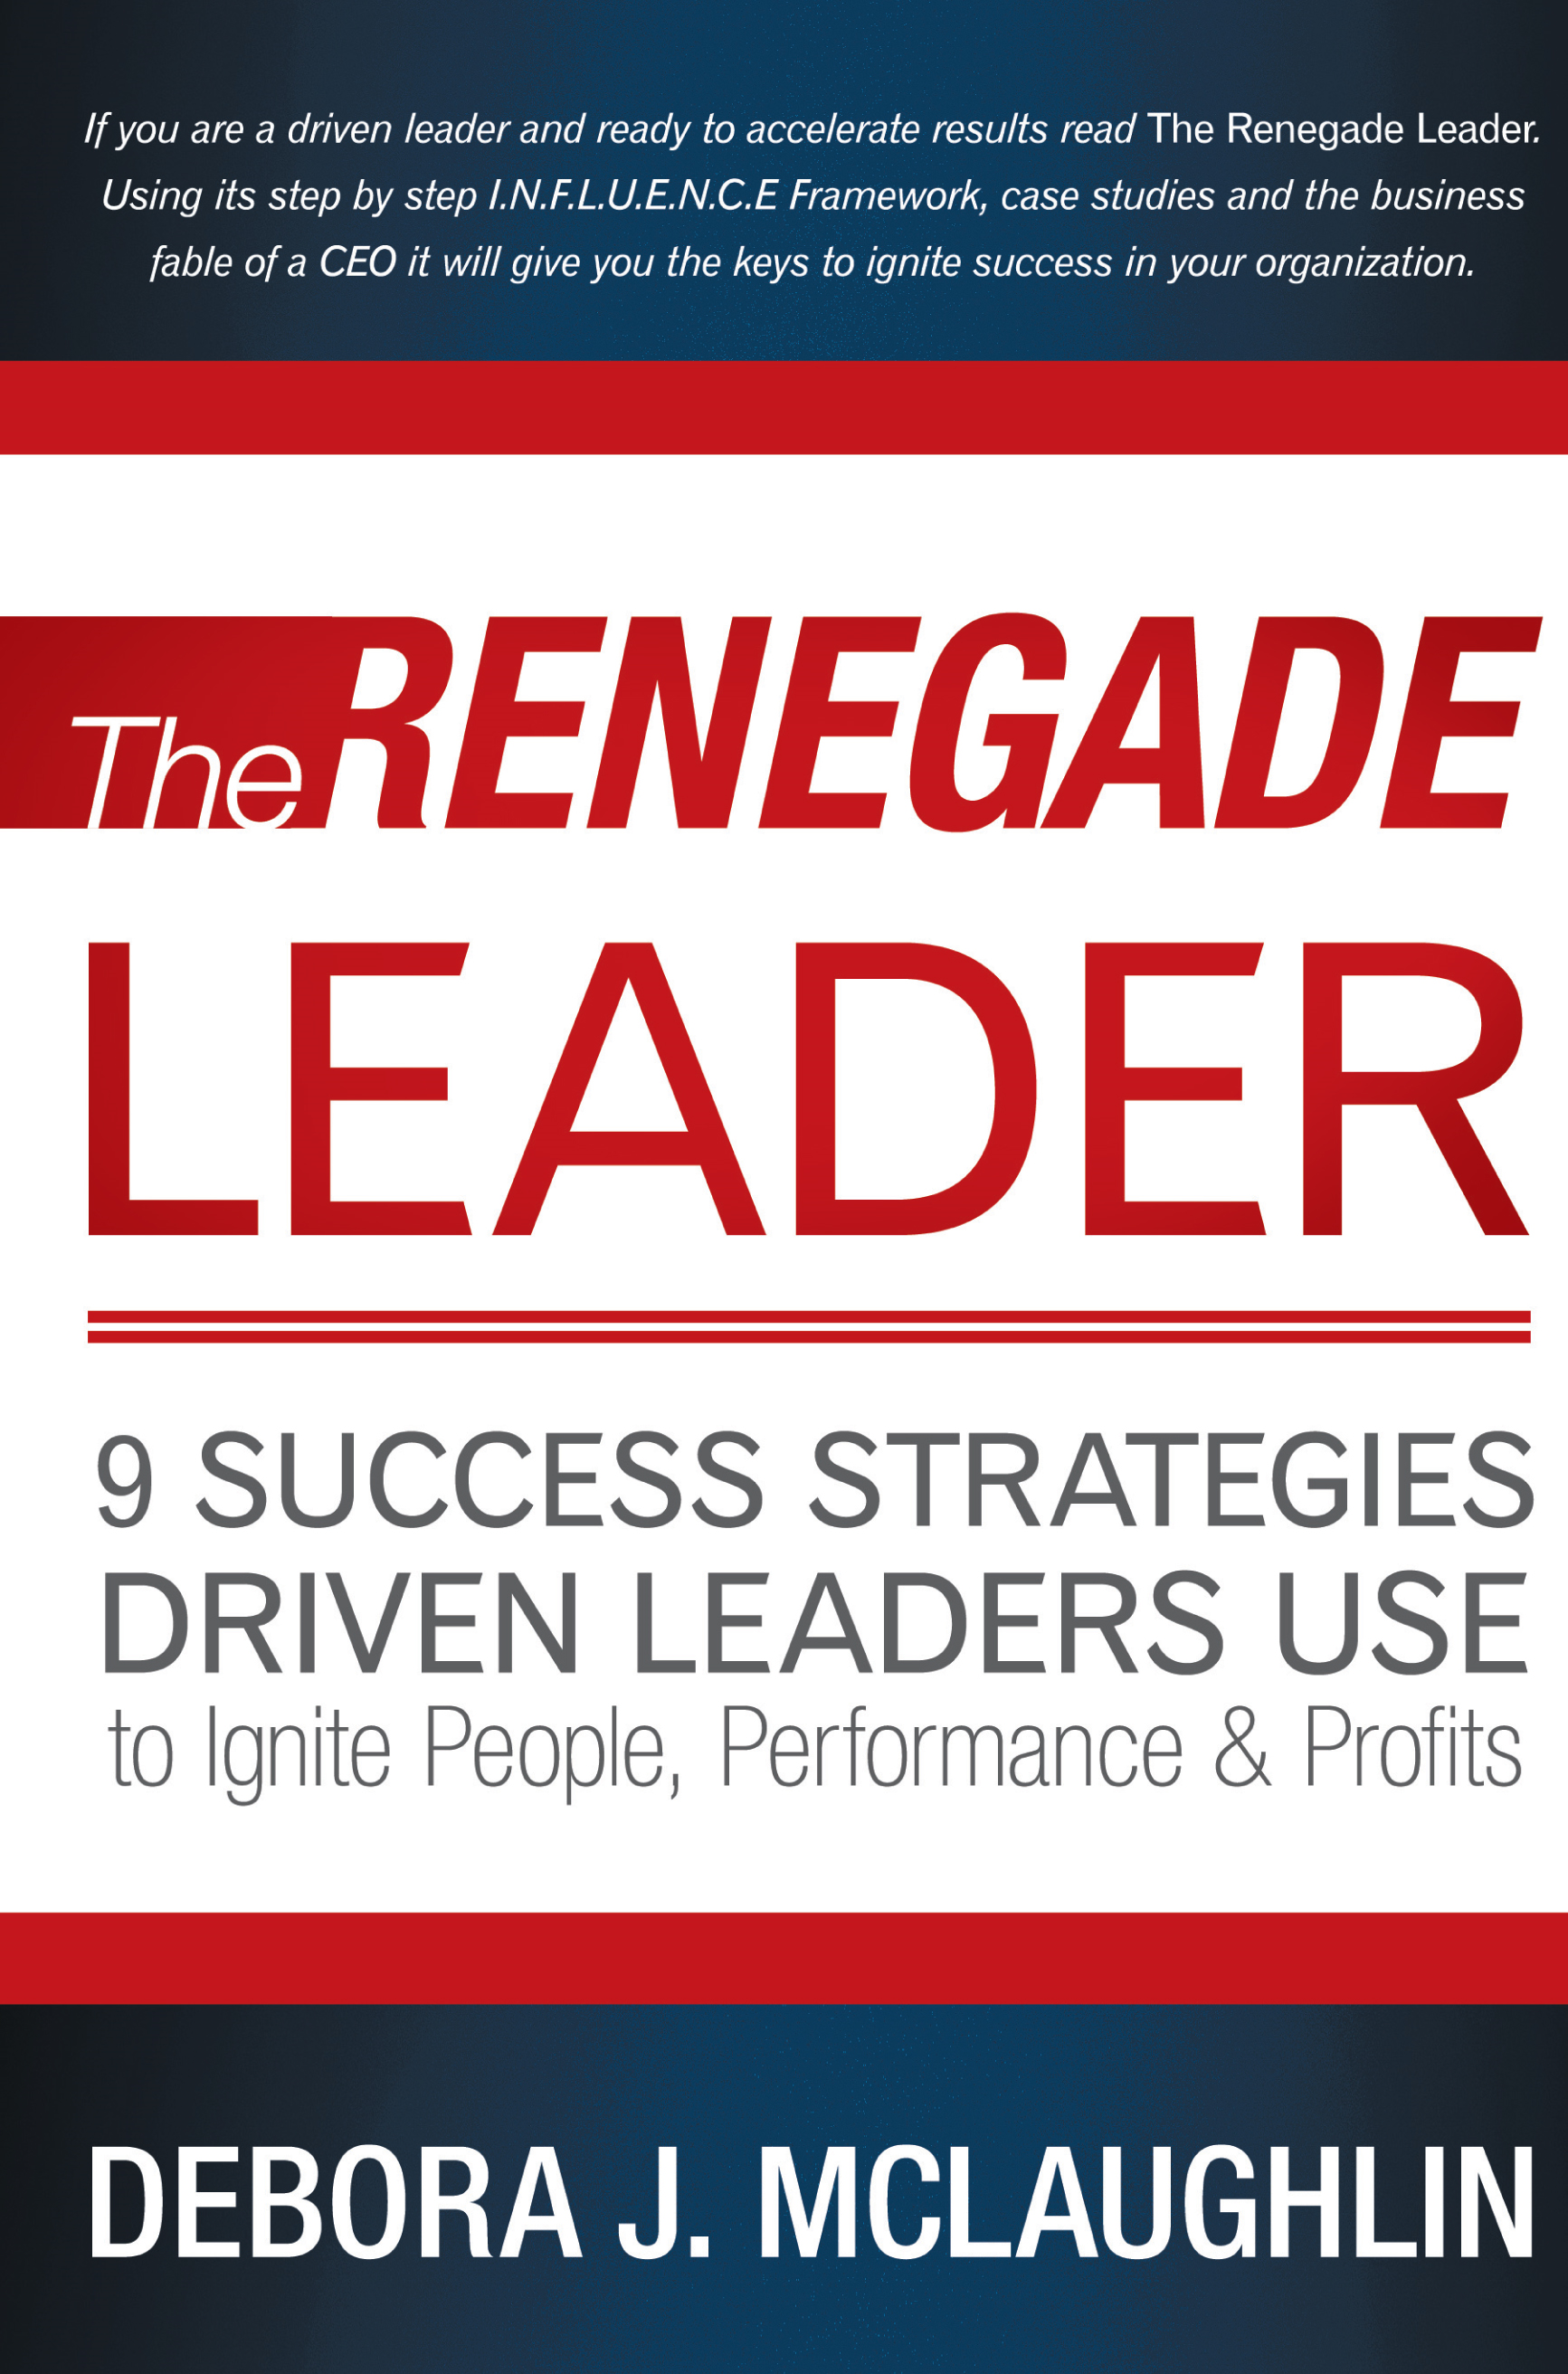 The Renegade Leader By: Debora J. McLaughlin